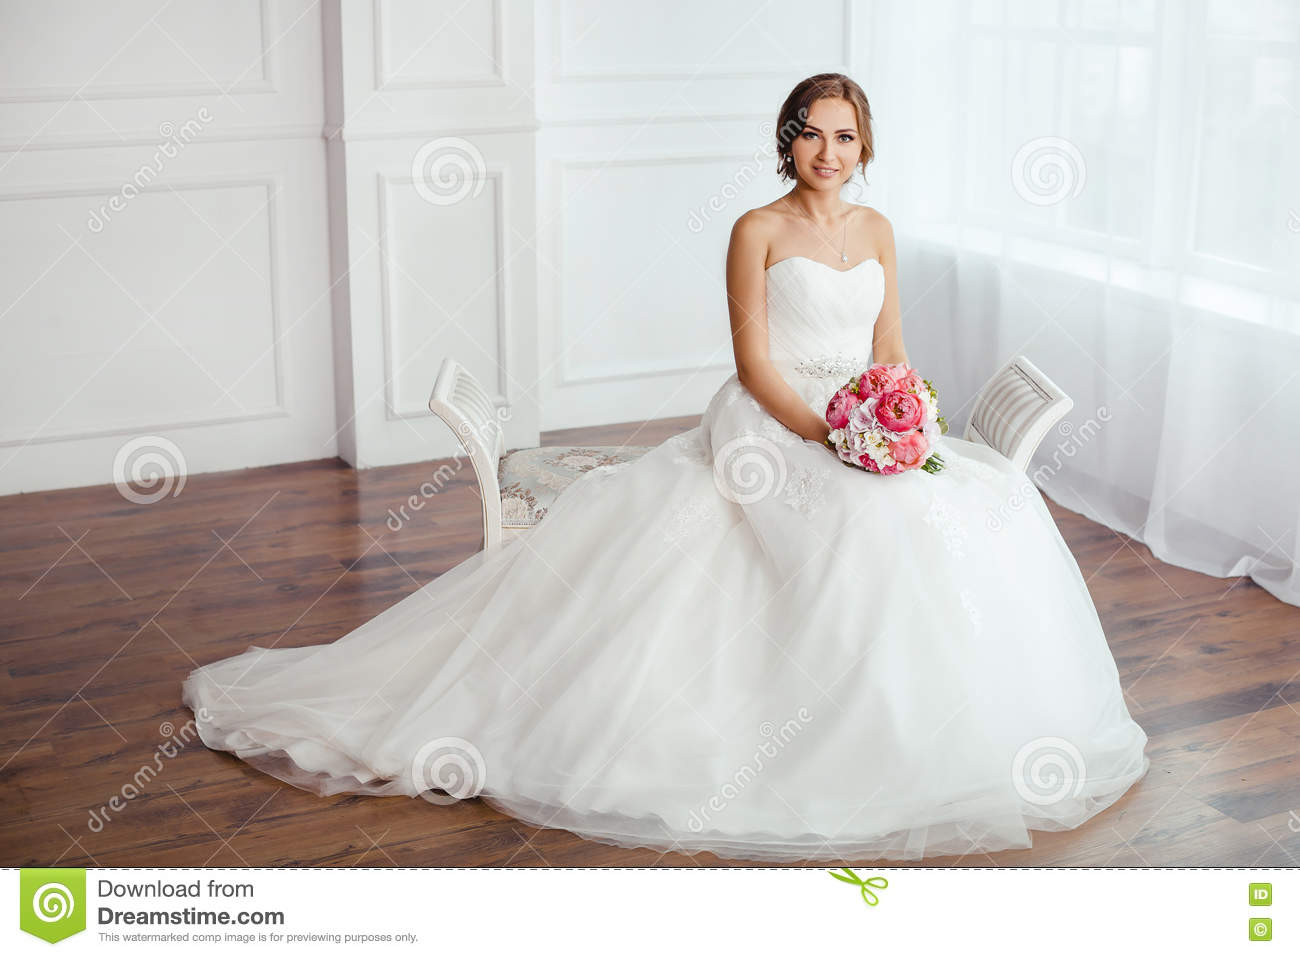 The Bride. Young Women With Wedding Dress In Very Bright